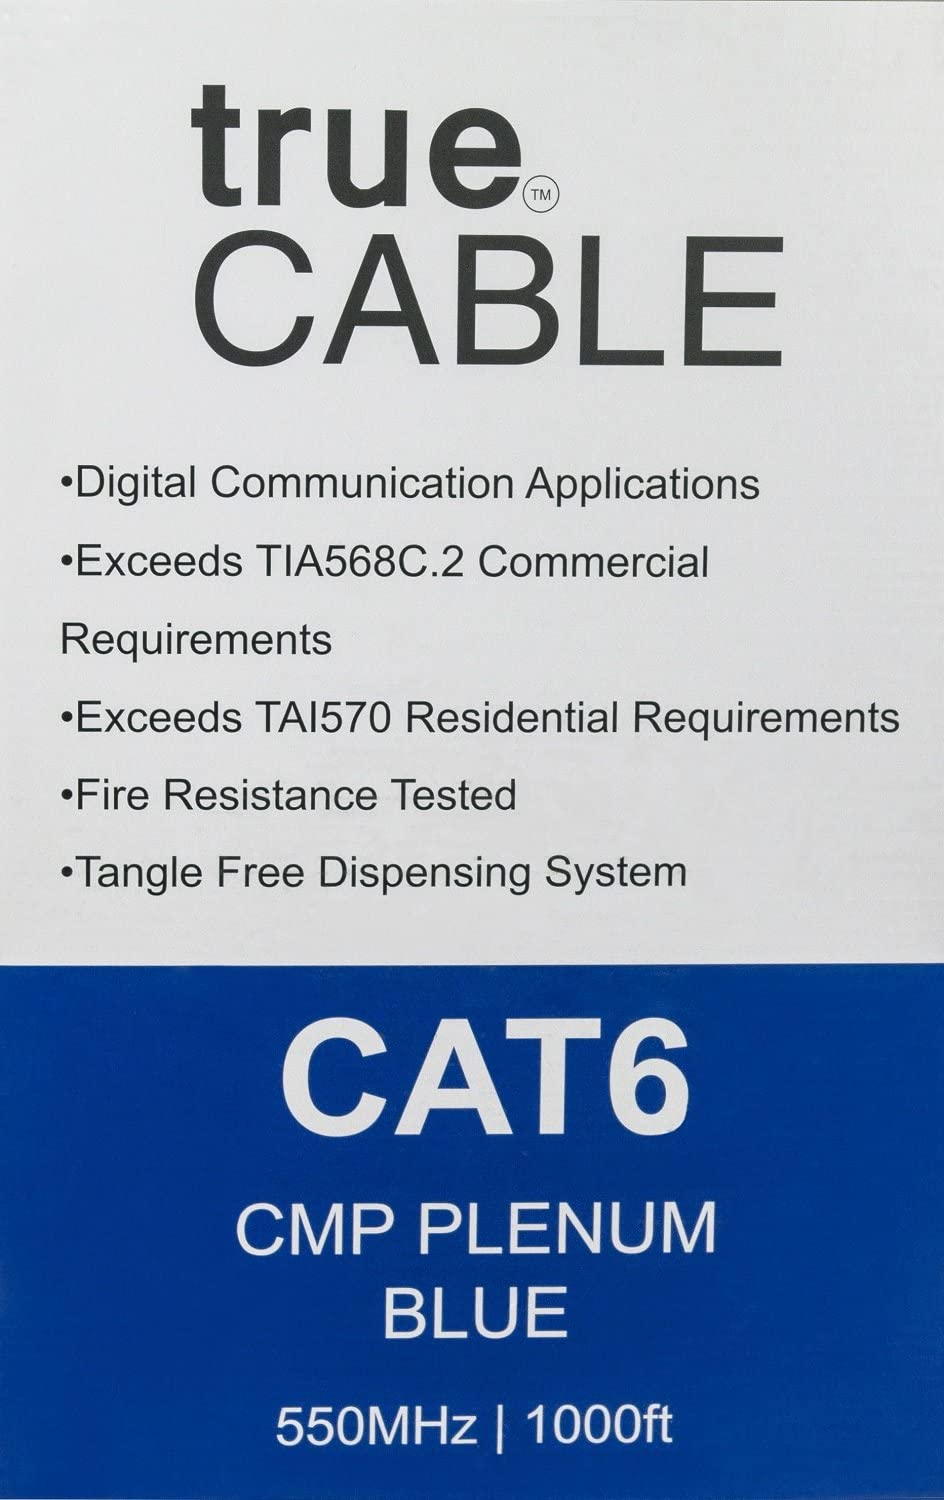 trueCABLE Cat6 Plenum (CMP), 1000ft, Blue, 23AWG 4 Pair Solid Bare Copper, 550MHz, ETL Listed, Unshielded Twisted Pair (UTP), Bulk Ethernet Cable: Computers & Accessories